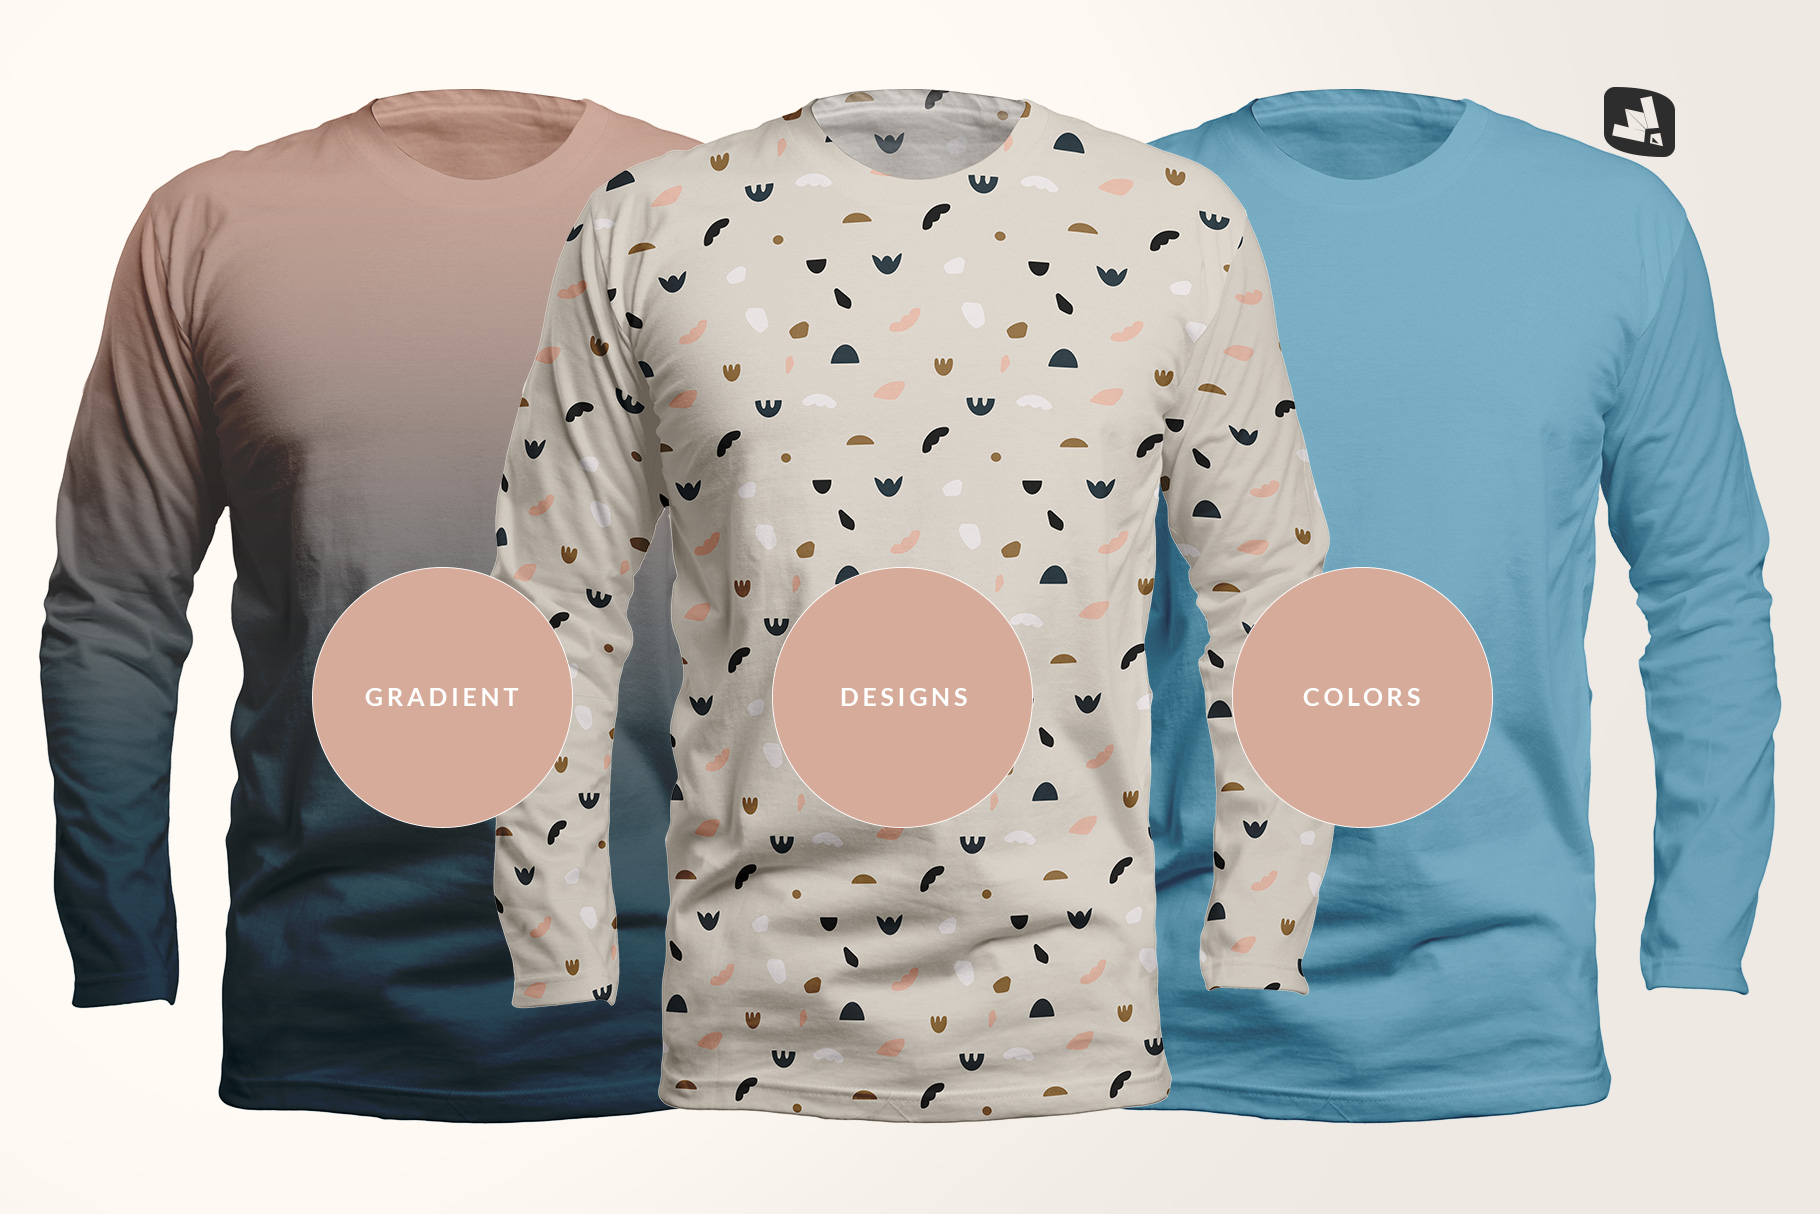 types of the long sleeve round collar tshirt mockup